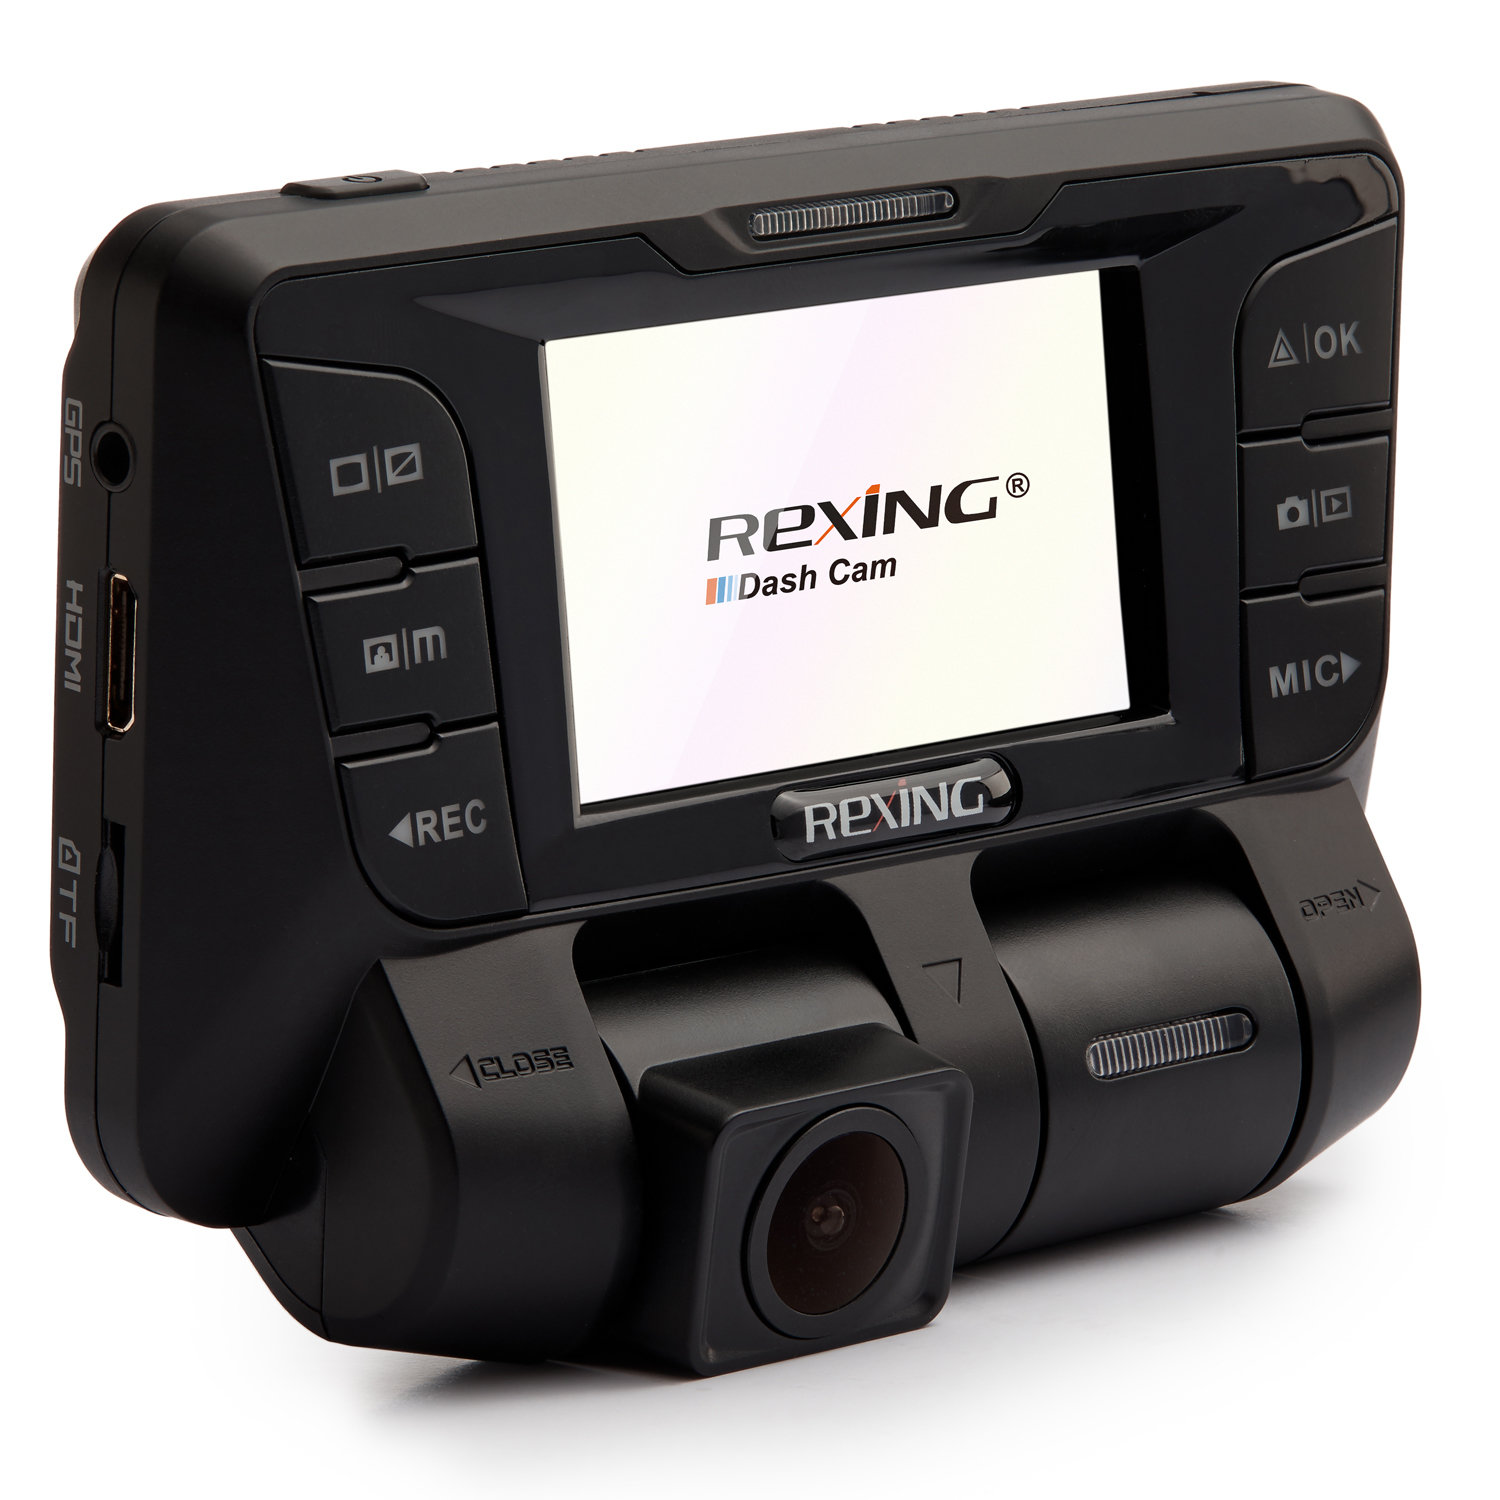 Rexing DashCam coupon: Rexing V2 RFR unit